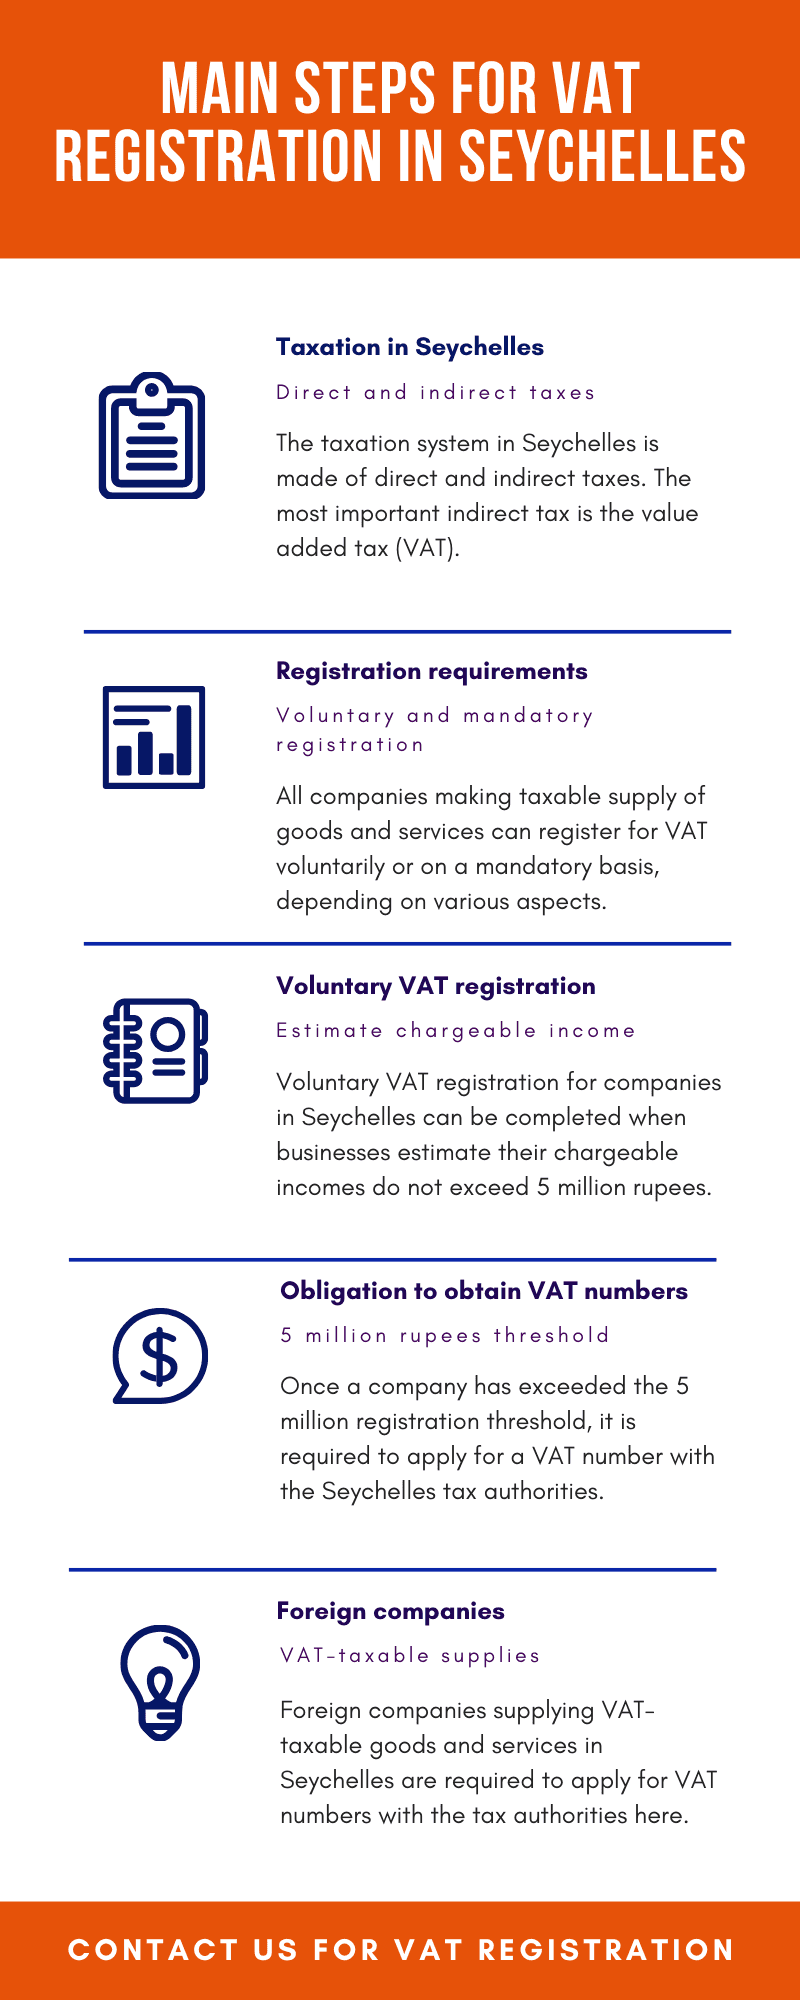 Main-steps-for-VAT-registration-in-Seychelles